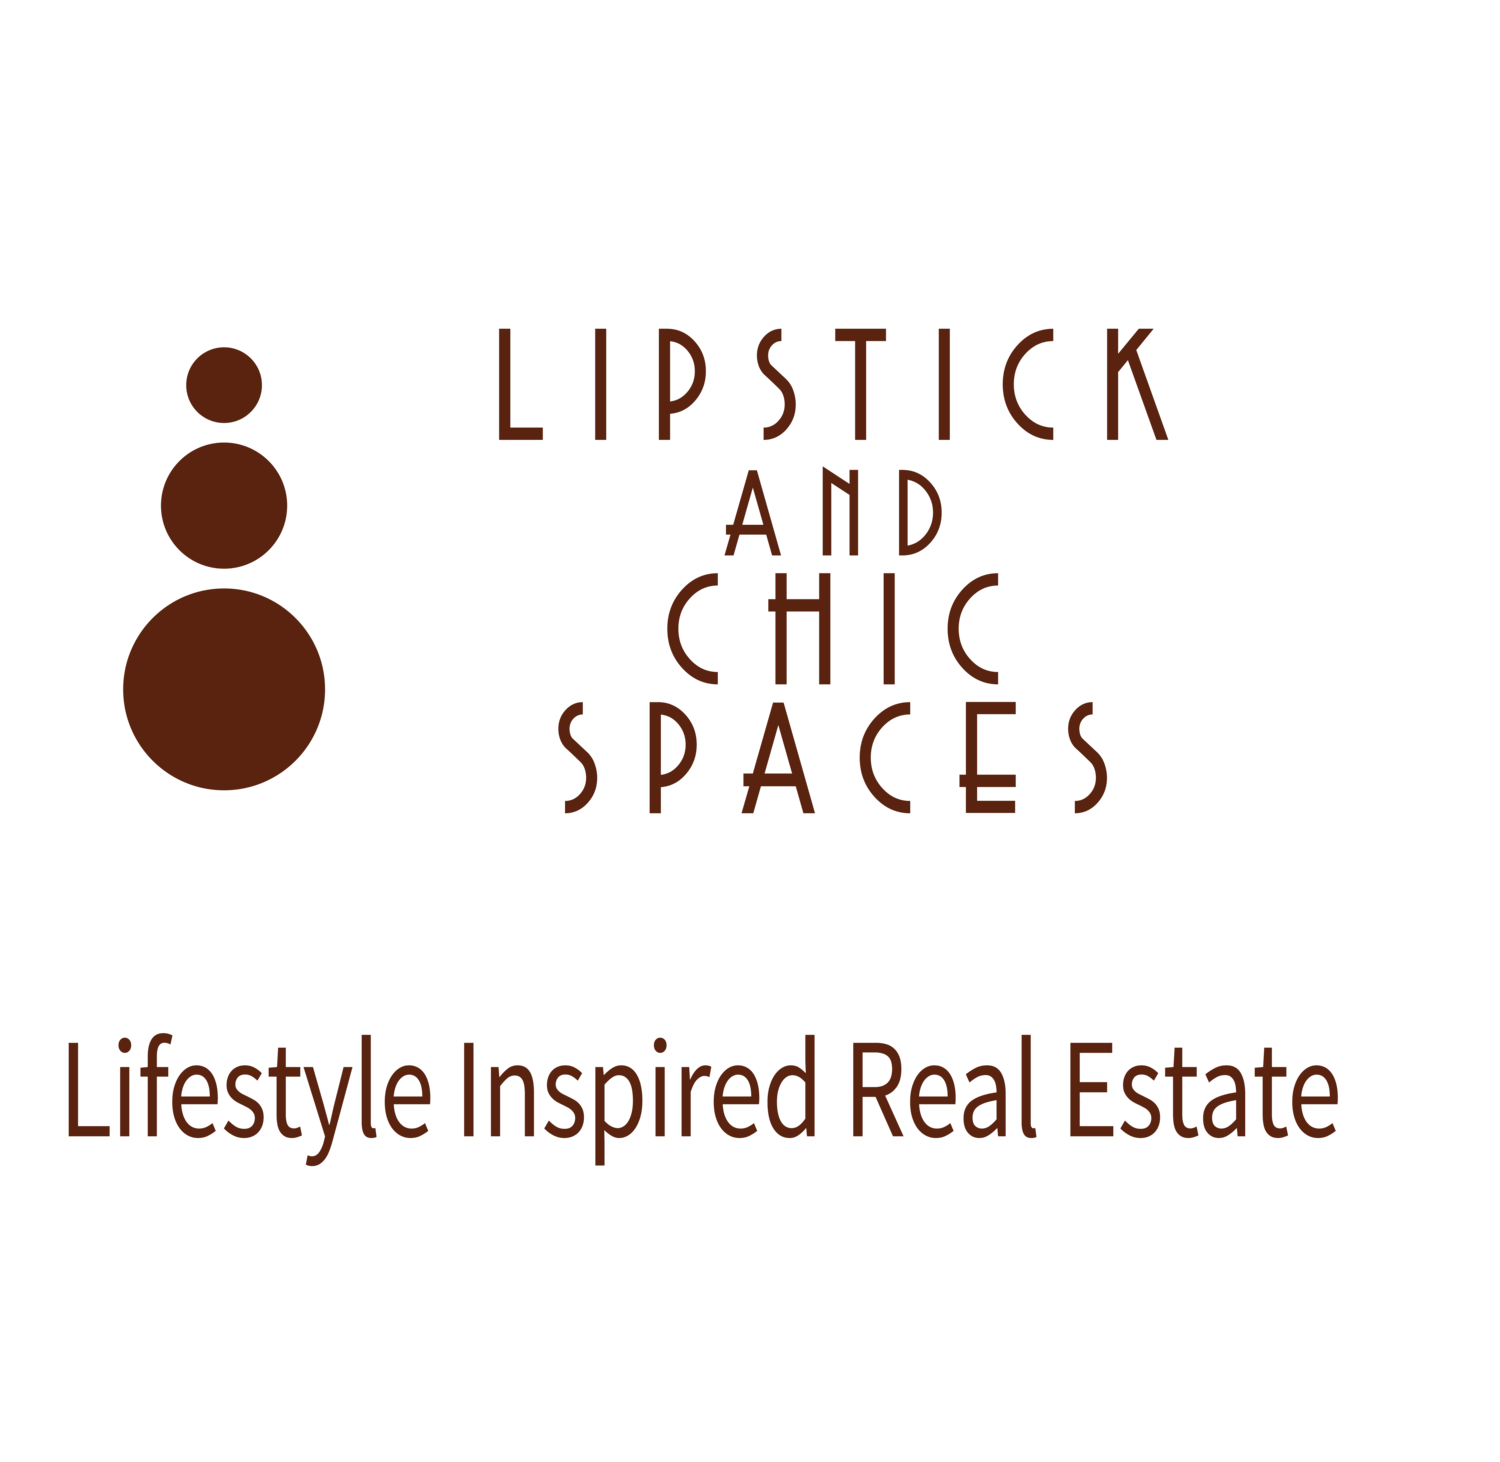 T. Bernie | Lifestyle Inspired Real Estate